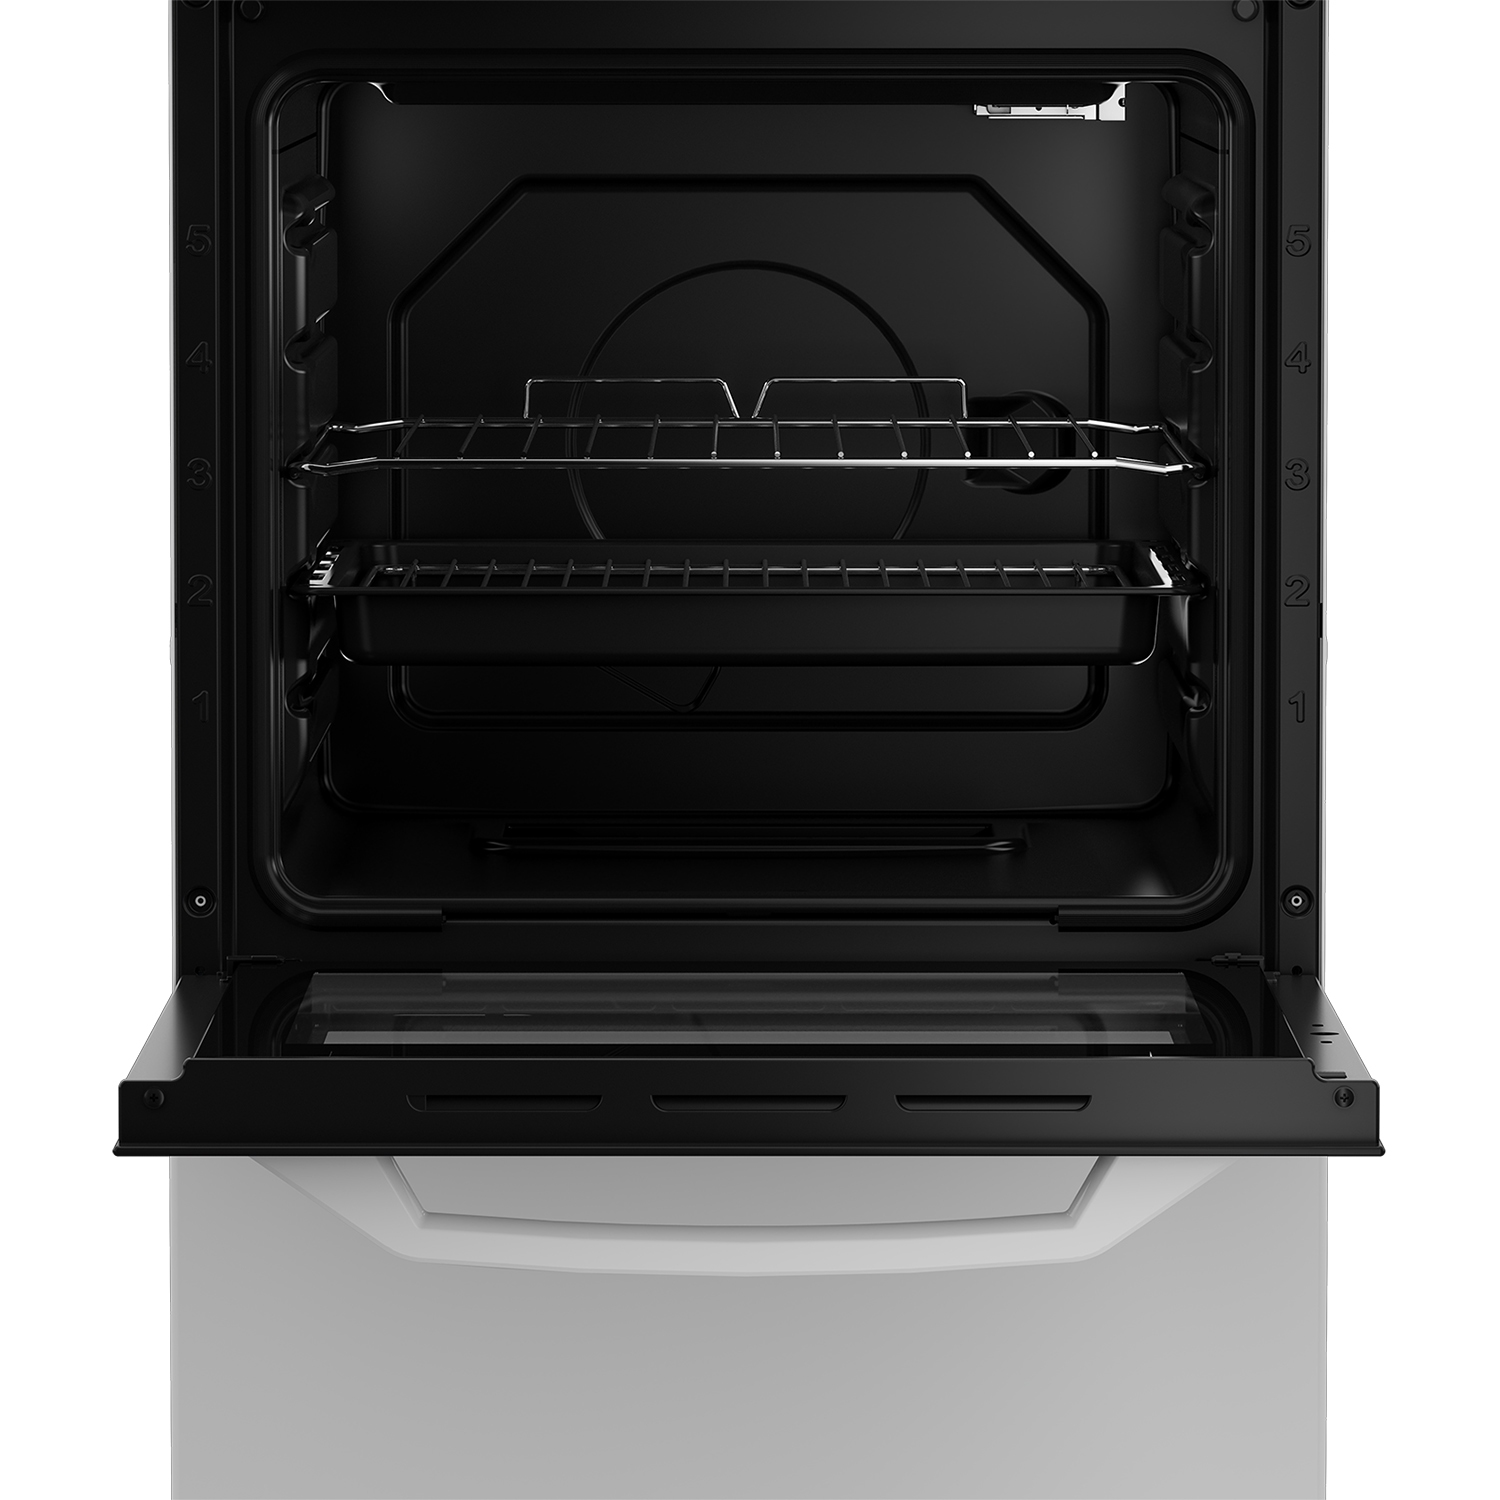 Zenith 50cm Single Oven Electric Cooker with solid plate - hob White- A Energy Rated - 1